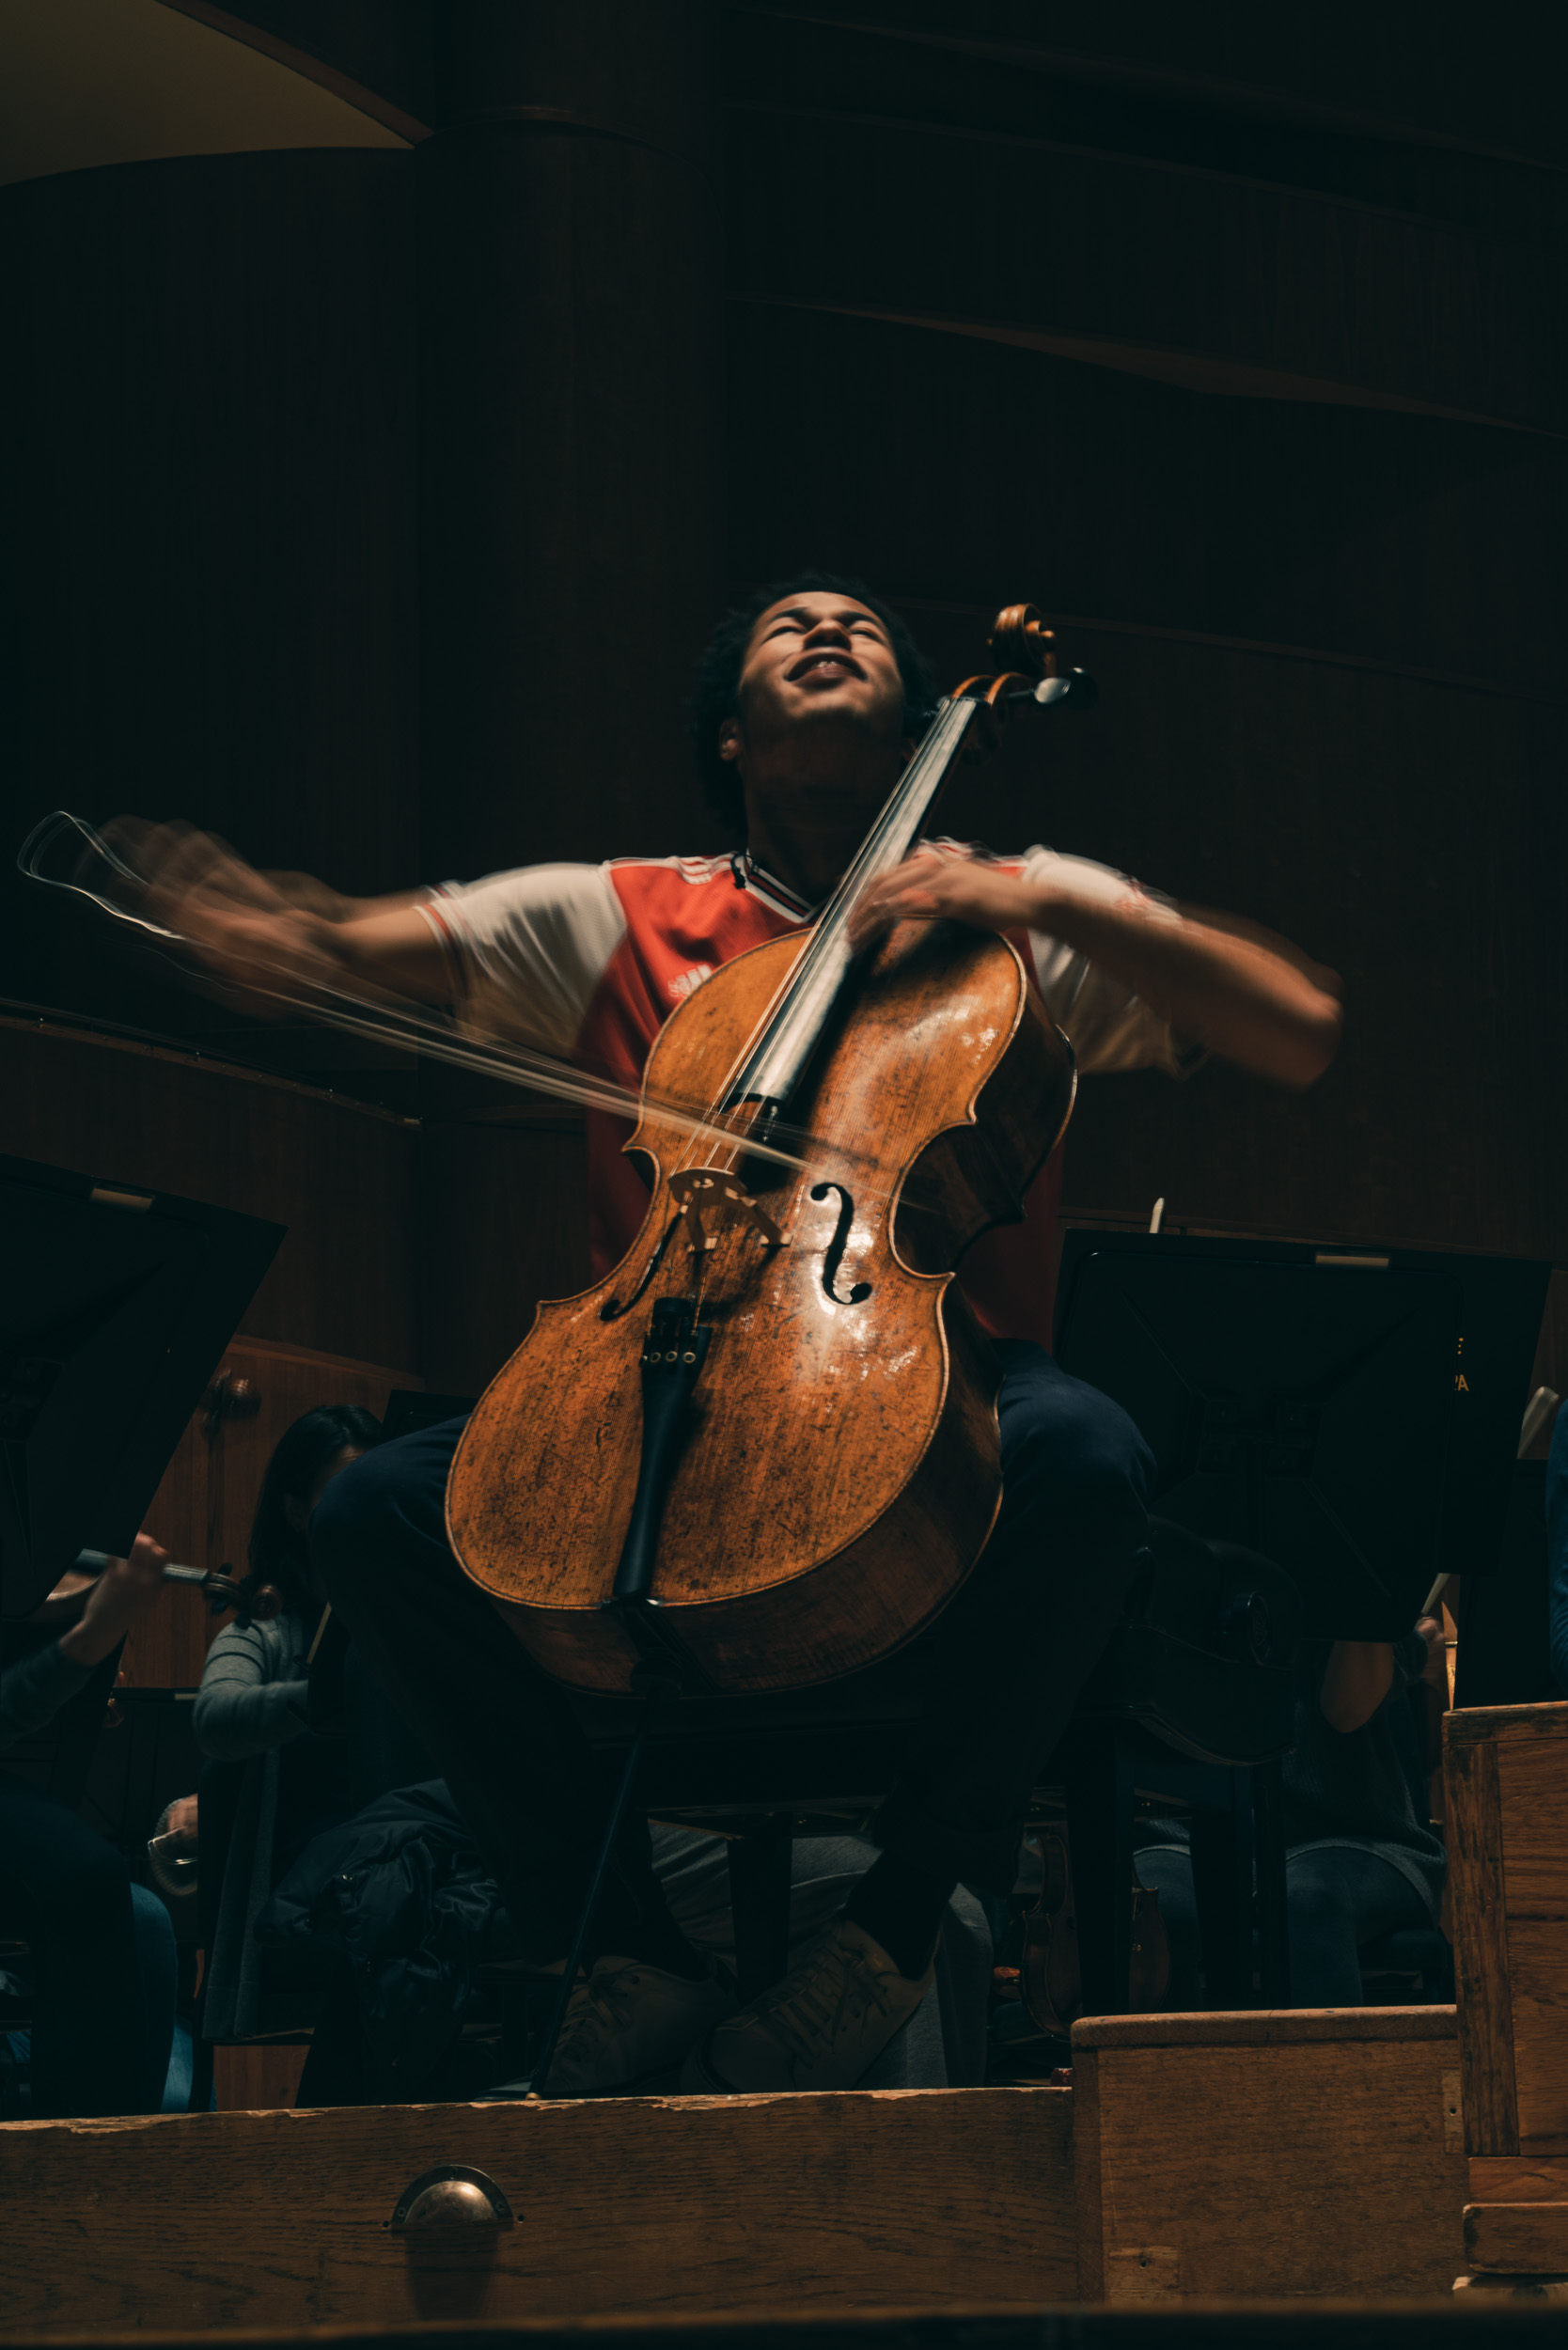 Sheku Kanneh-Mason, a famous cellist from London, rehearses with the Baltimore Symphony Orchestra